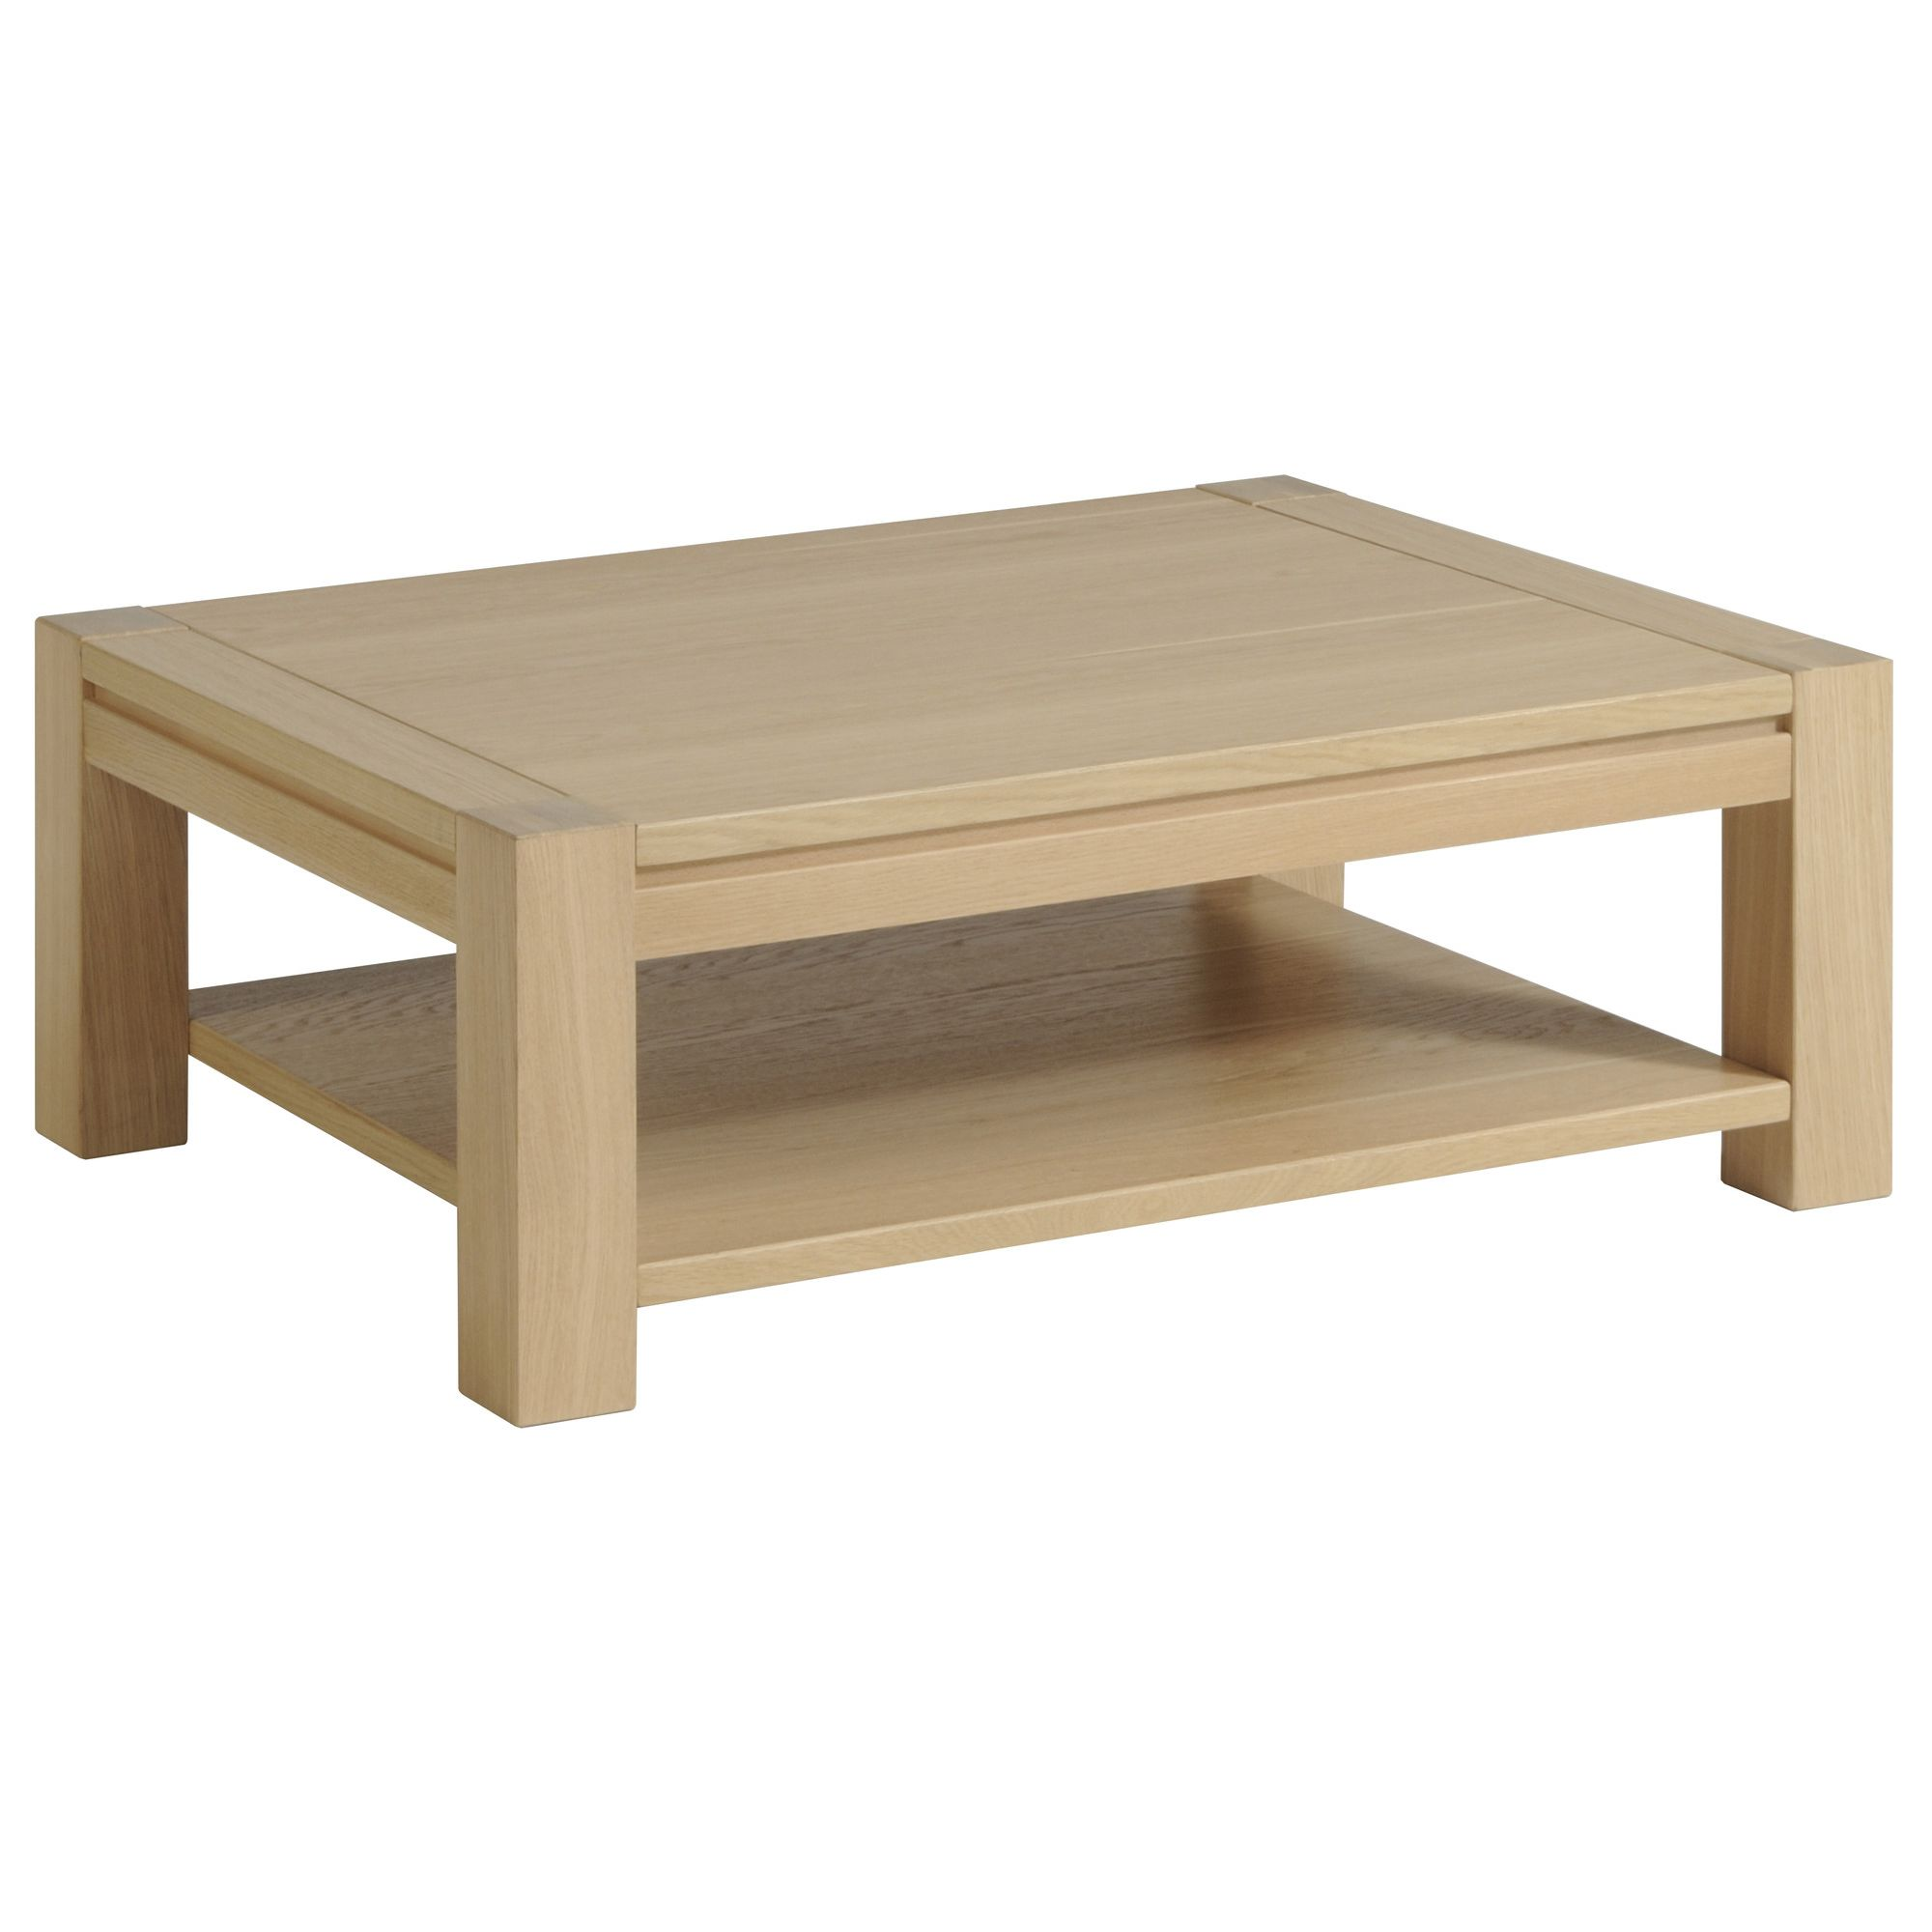 Parisot Lockwood Coffee Table at Tesco Direct